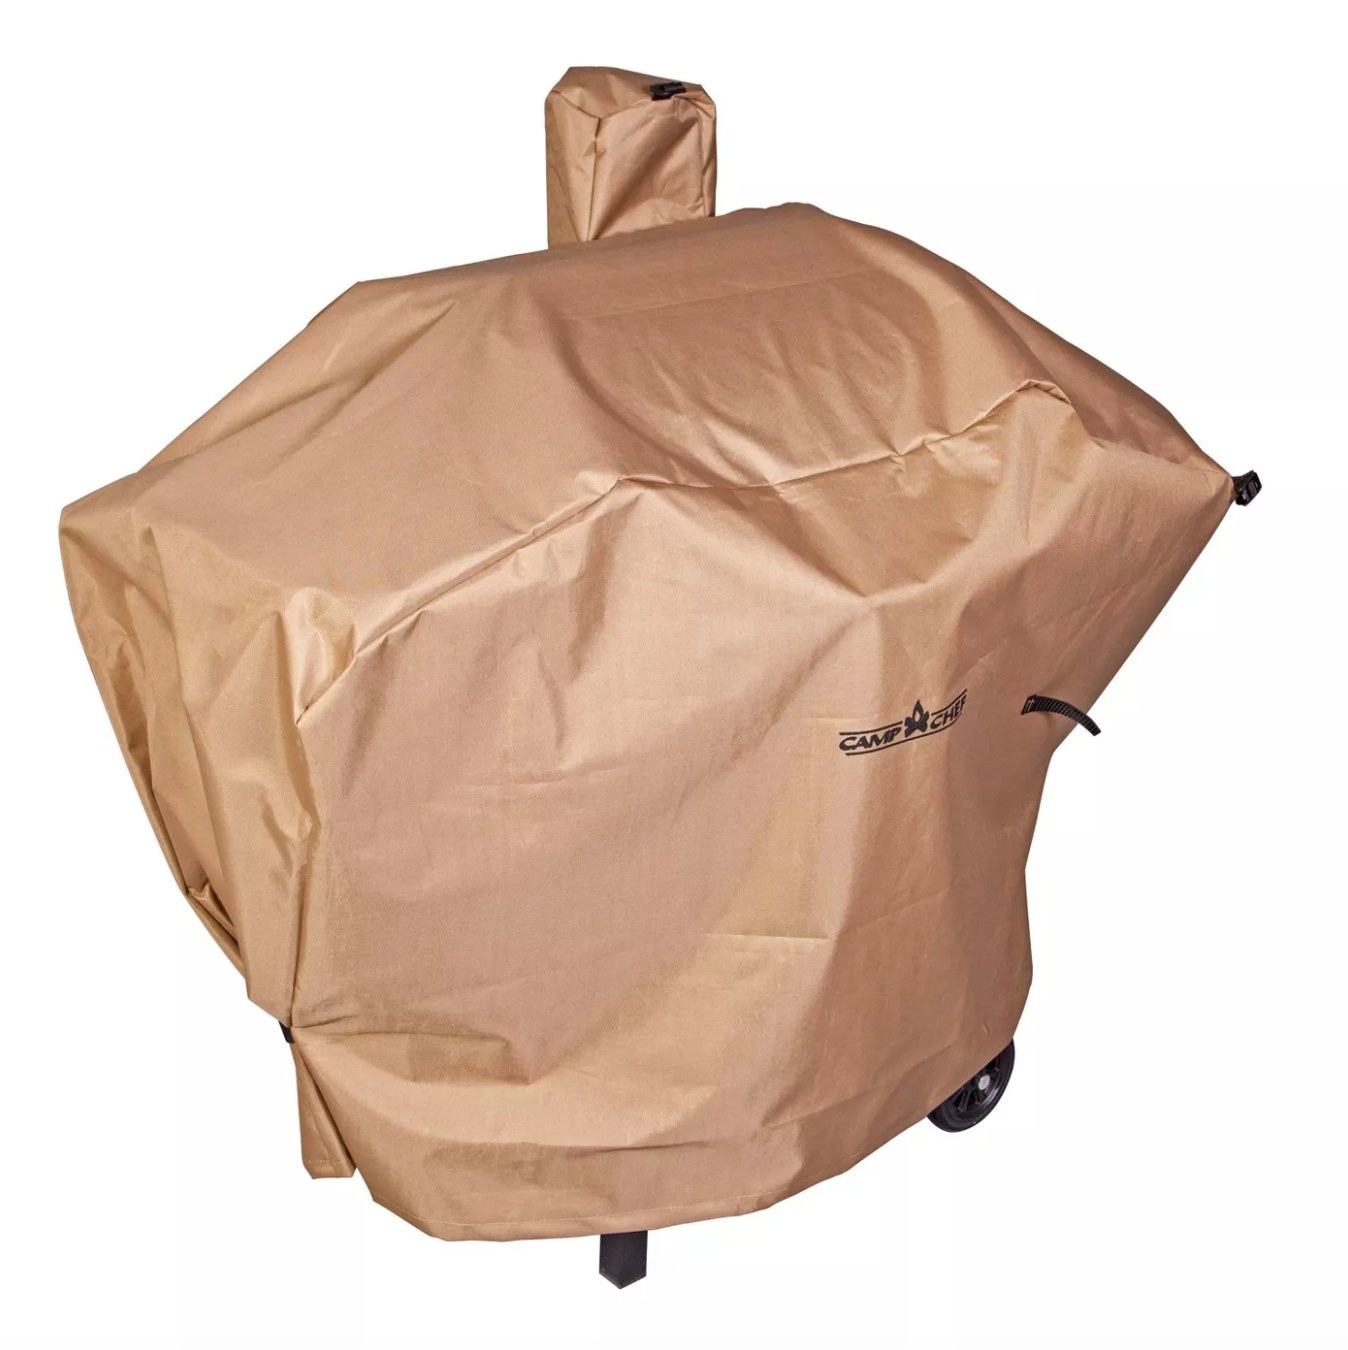 The grill cover